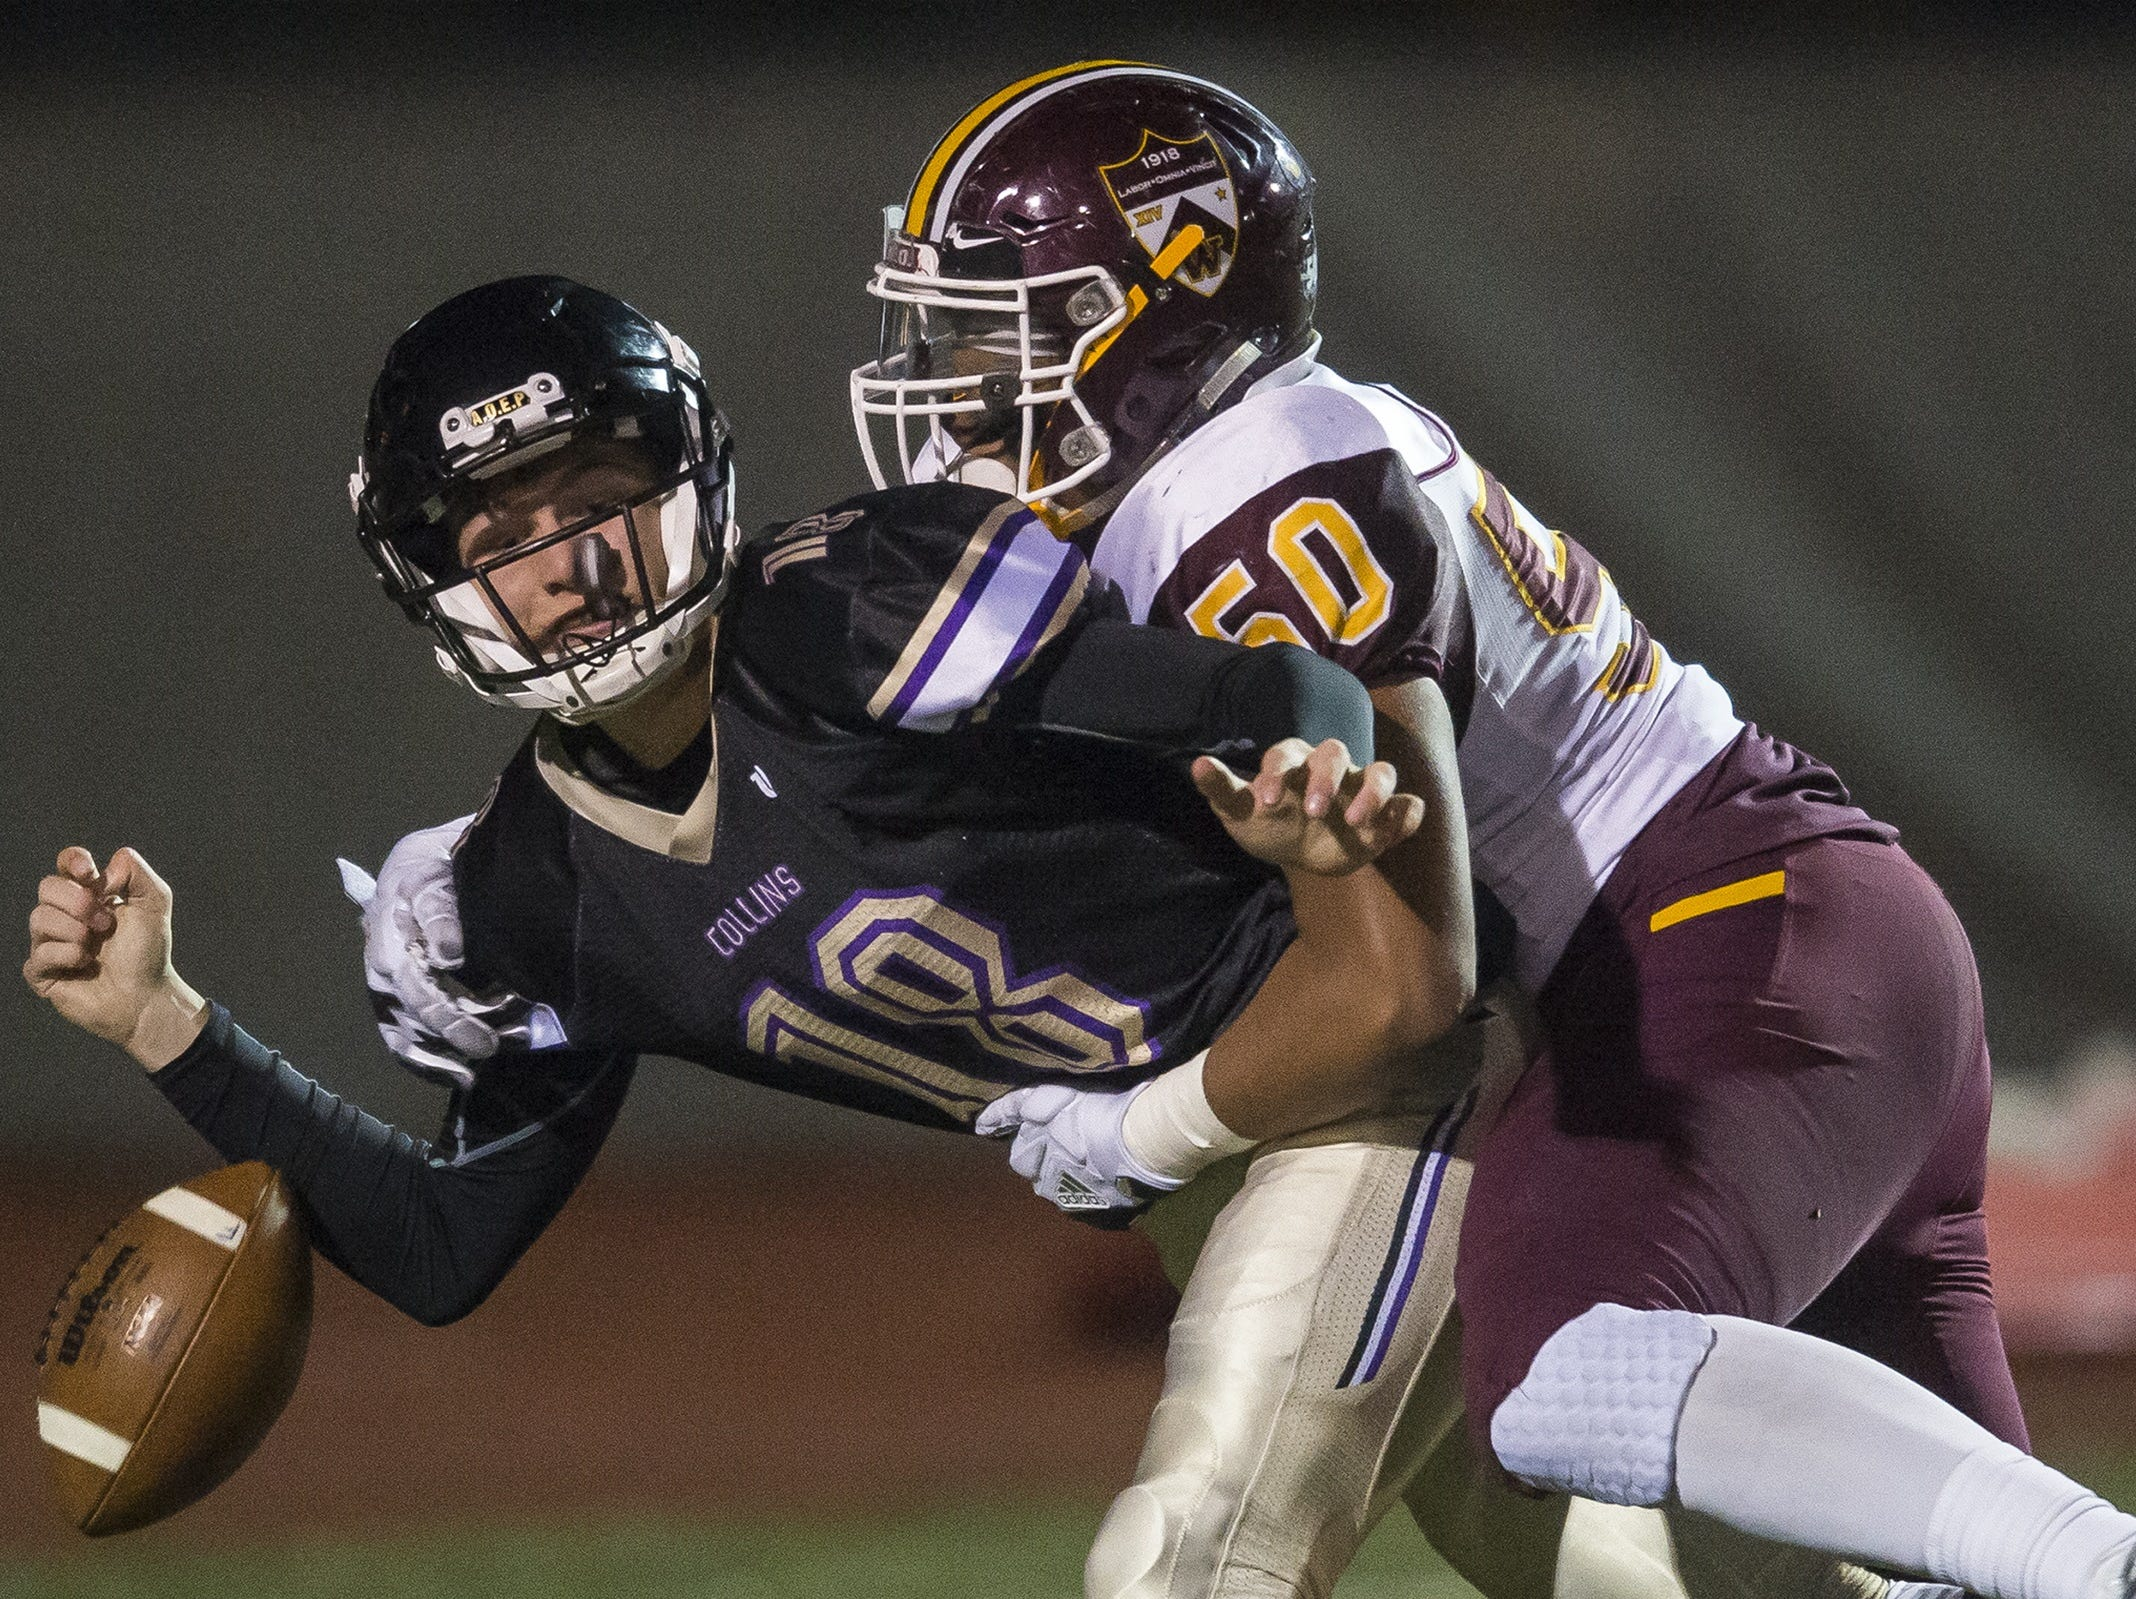 Windsor High School junior defensive lineman Avery Westphal (50) sacks and strips Fort Collins High School sophomore quarterback Hayden Iverson (18) on Friday, Nov. 3, 2017, at French Field in Fort Collins, Colo.